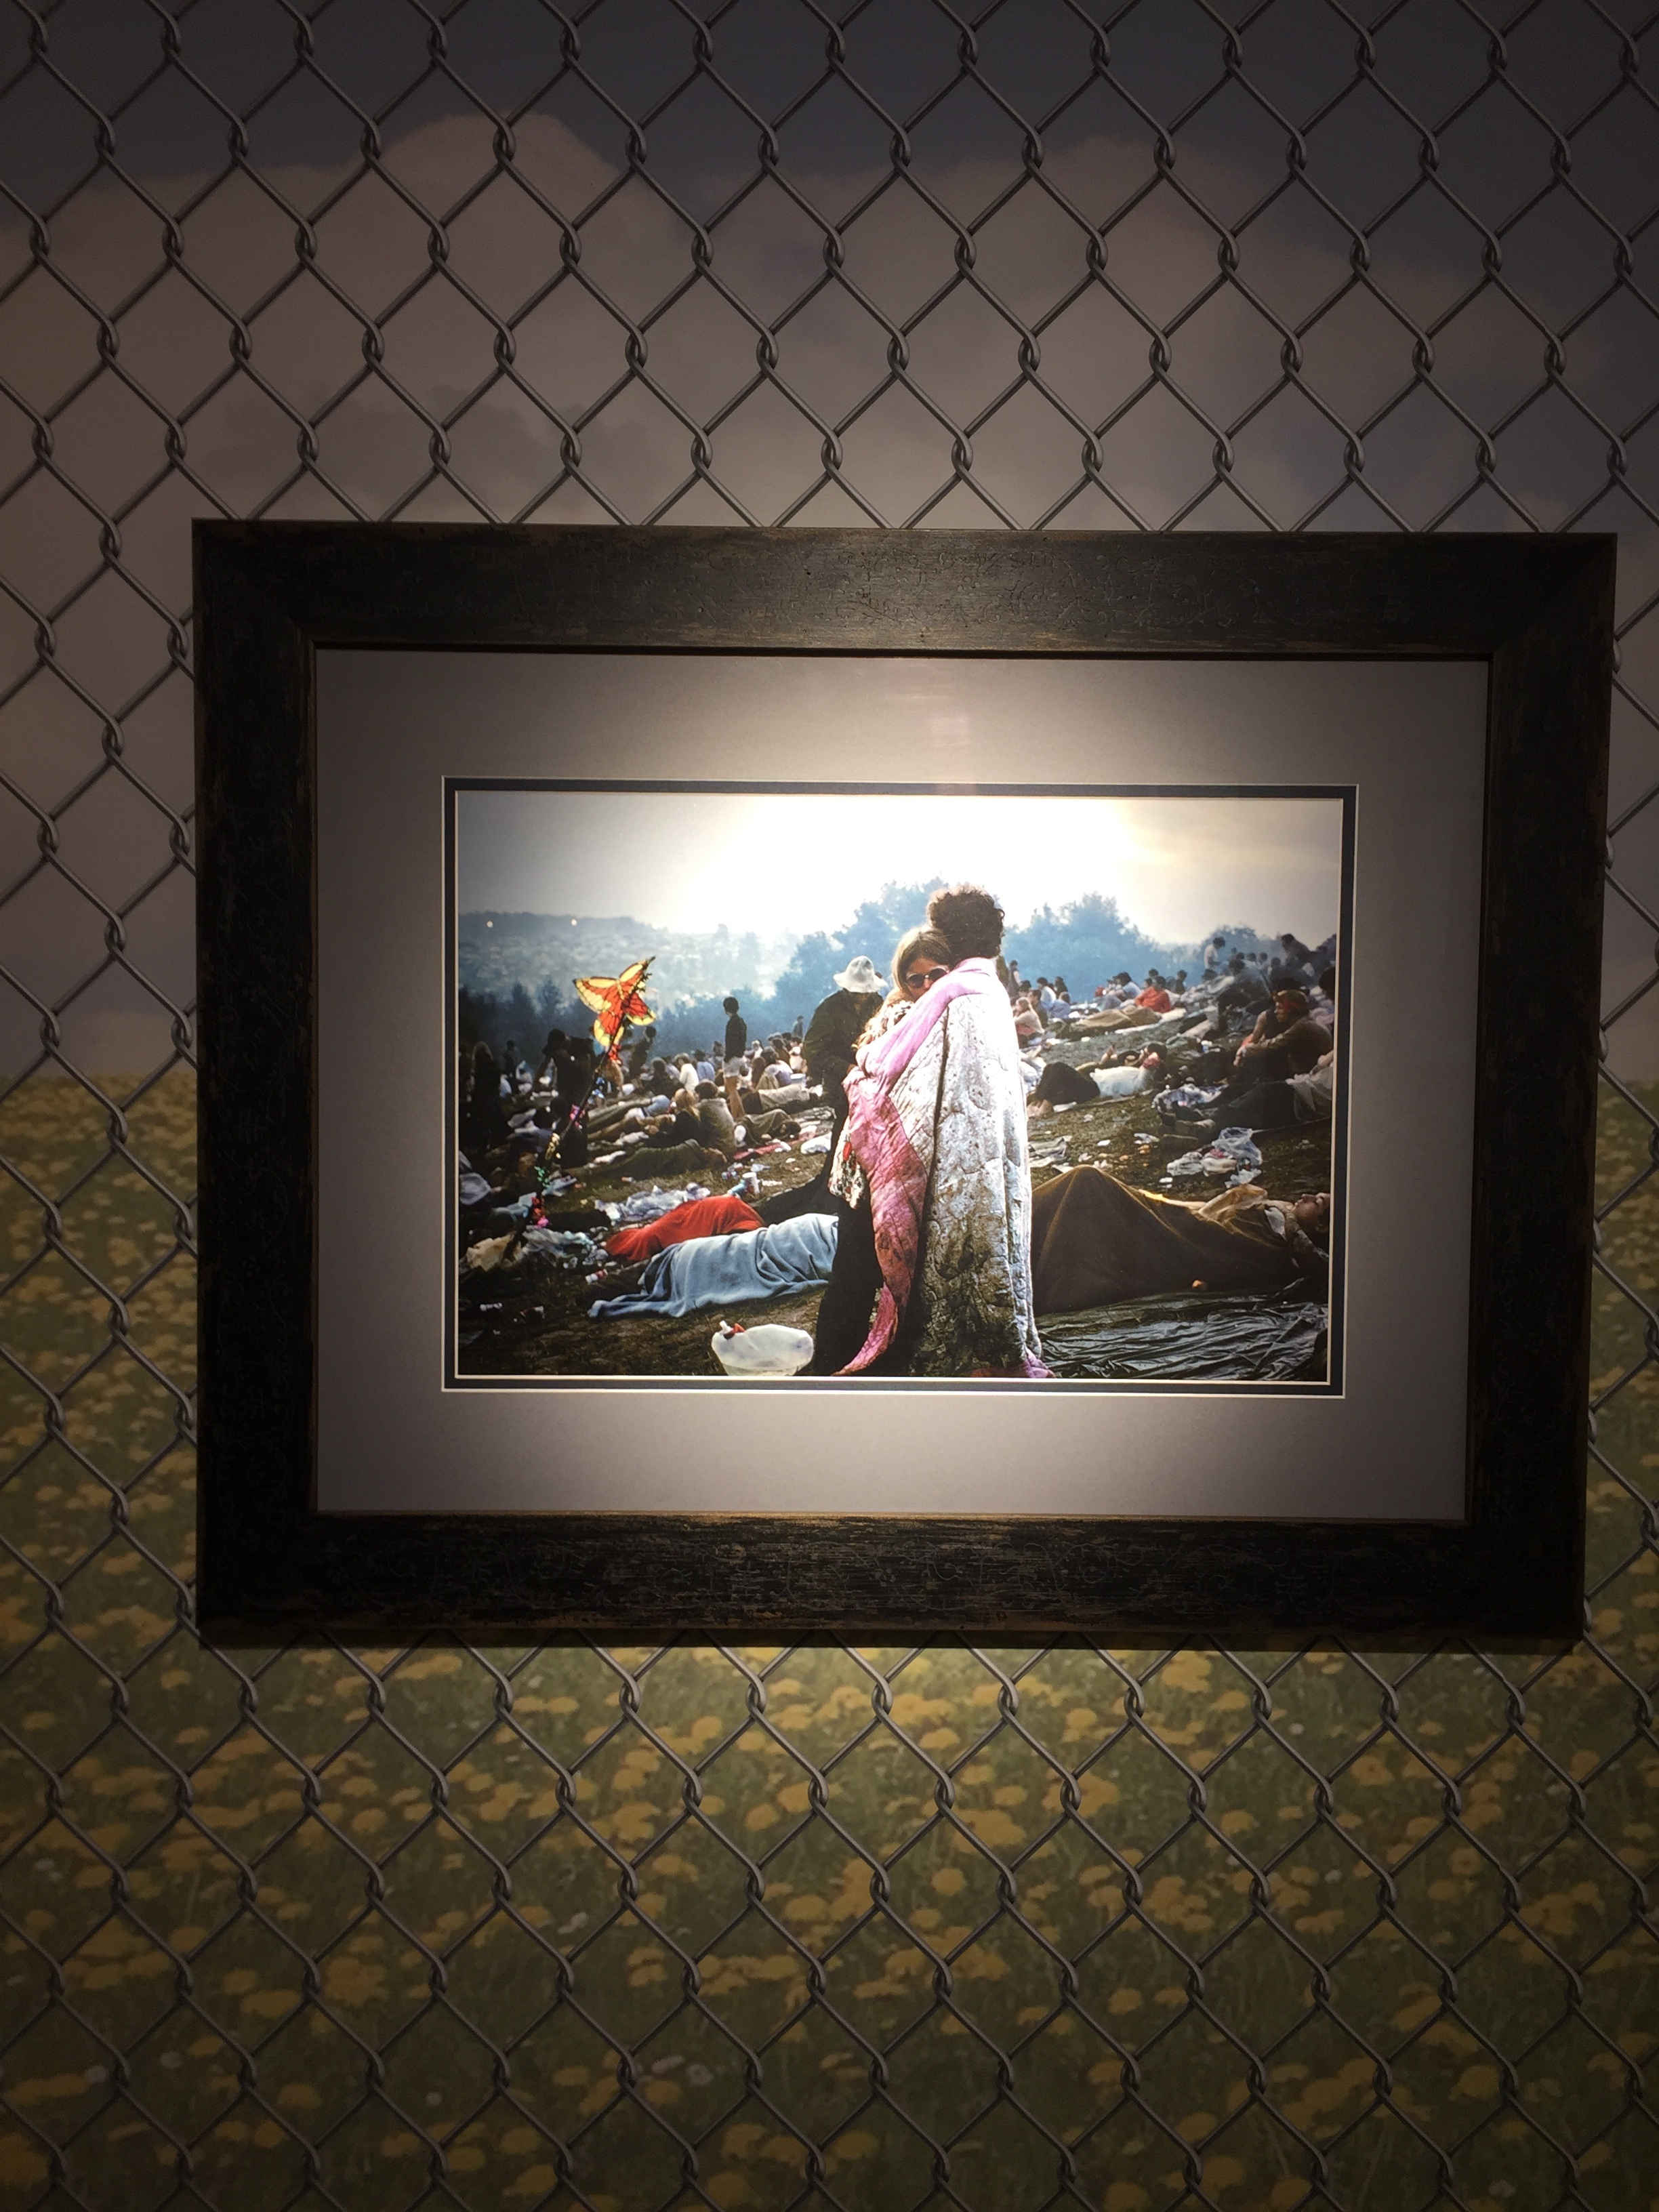 """Photograph from the original Woodstock festival is part of the exhibition: """"We Are Golden: Reflections on the 50th Anniversary of the Woodstock Festival and Aspirations for a Peaceful Future"""" at Bethel Woods."""